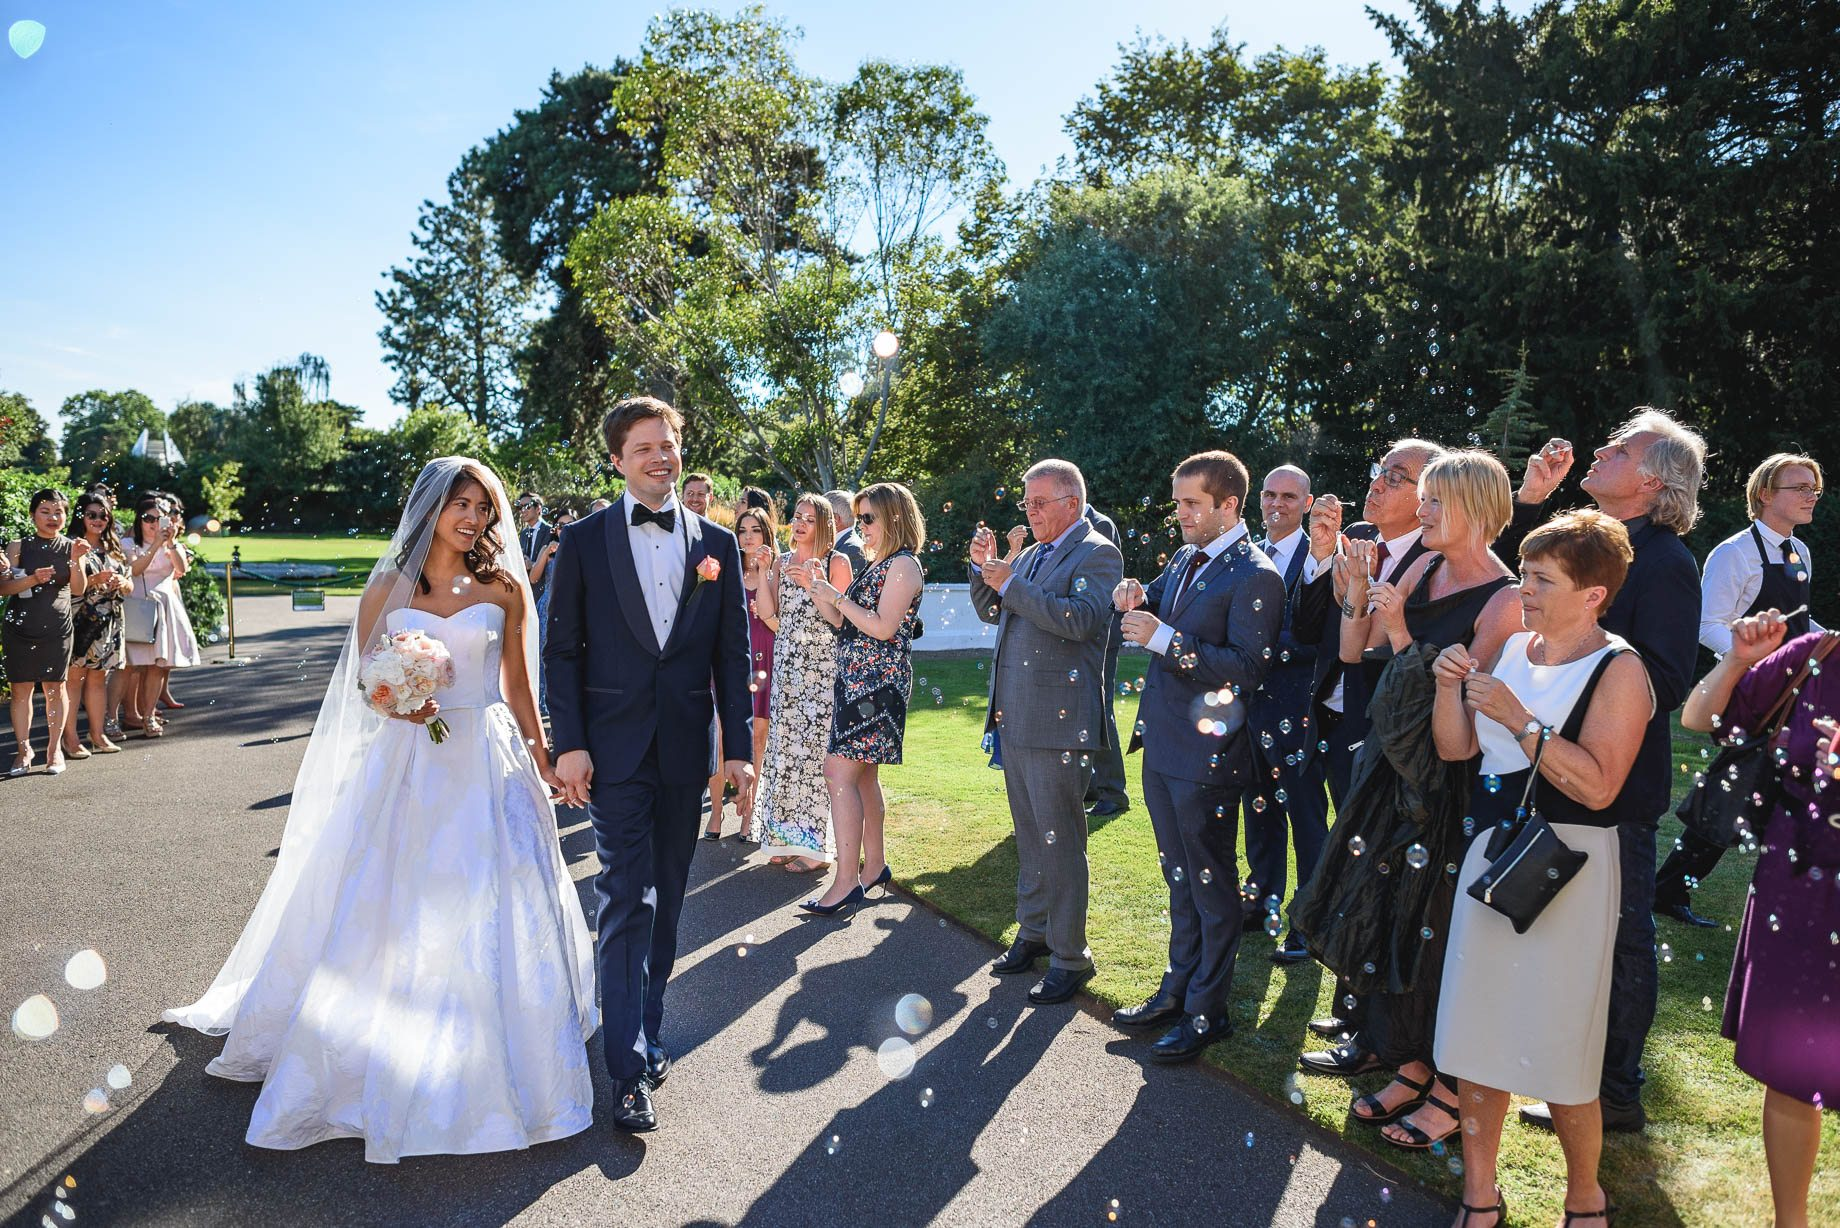 Kew Gardens wedding photography - Guy Collier Photography - Gloria and Frederik (59 of 173)